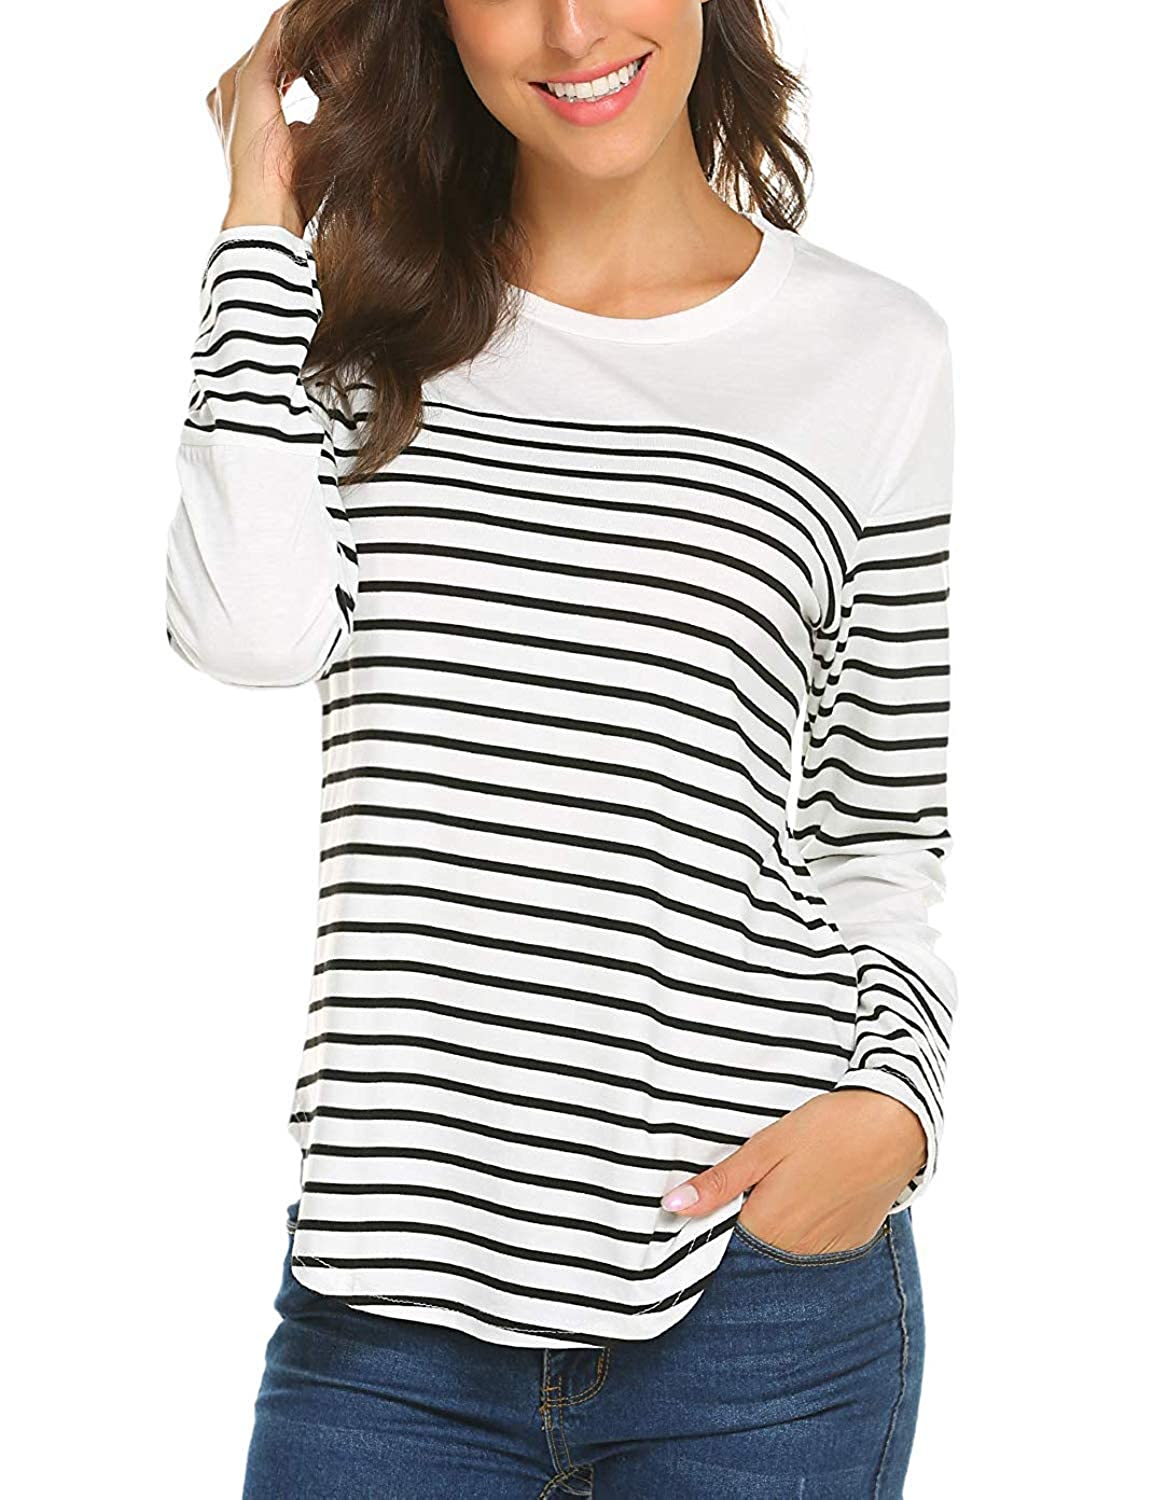 YANDW Women Tops Long Sleeve Tee Shirt Striped Cotton Knit T-Shirt Soft Tunic Blouse T015